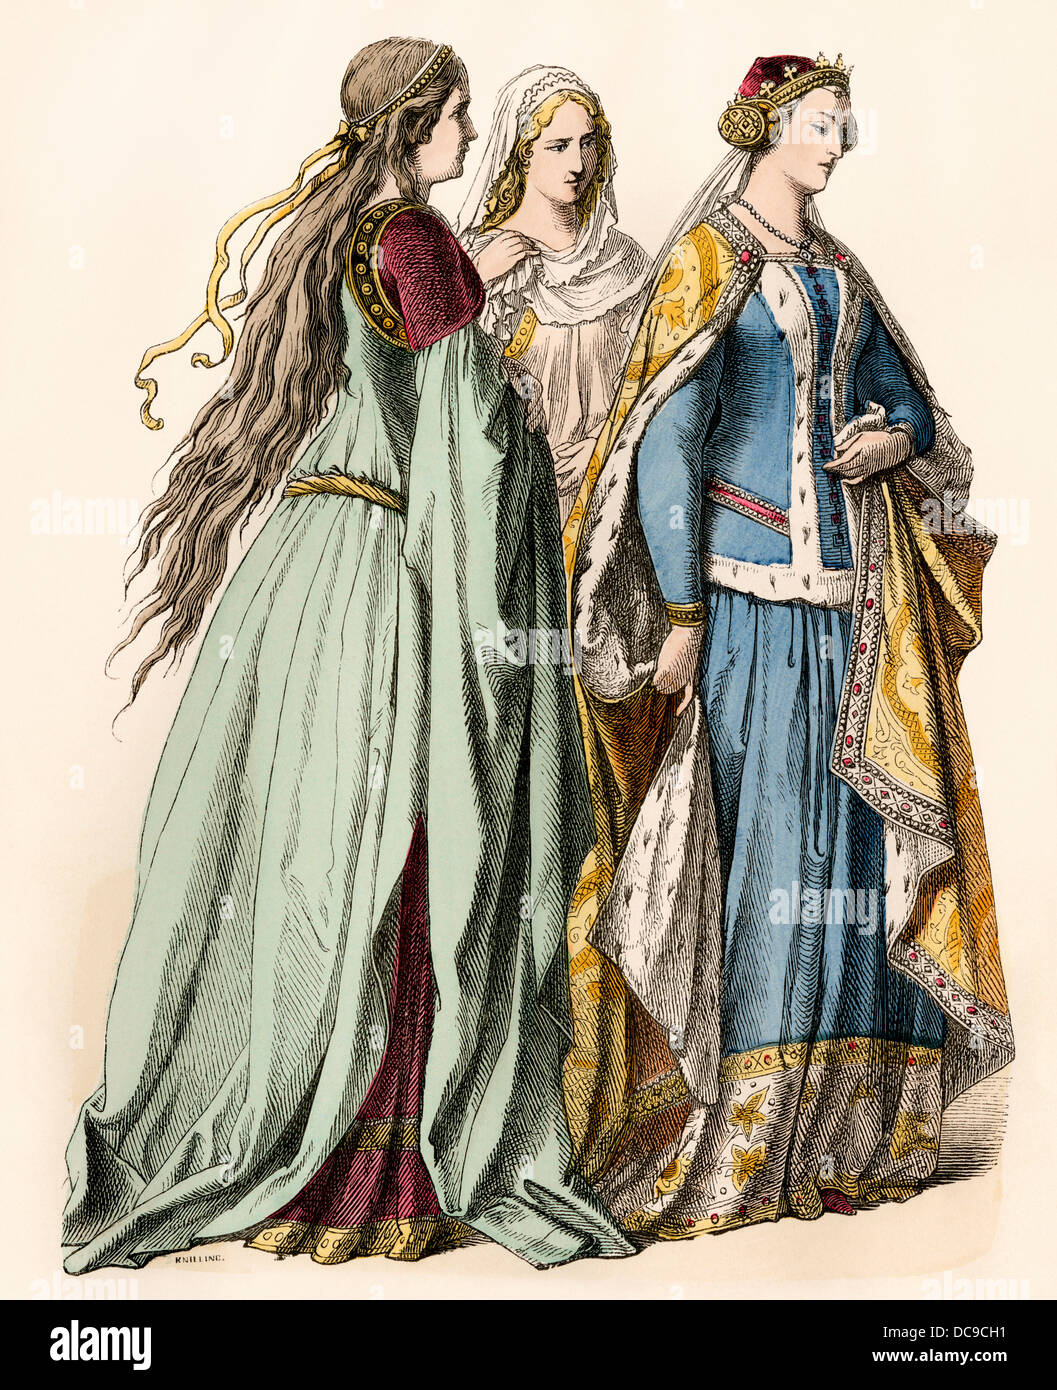 Ladies attending an English princess of the 14th century. Hand-colored print - Stock Image